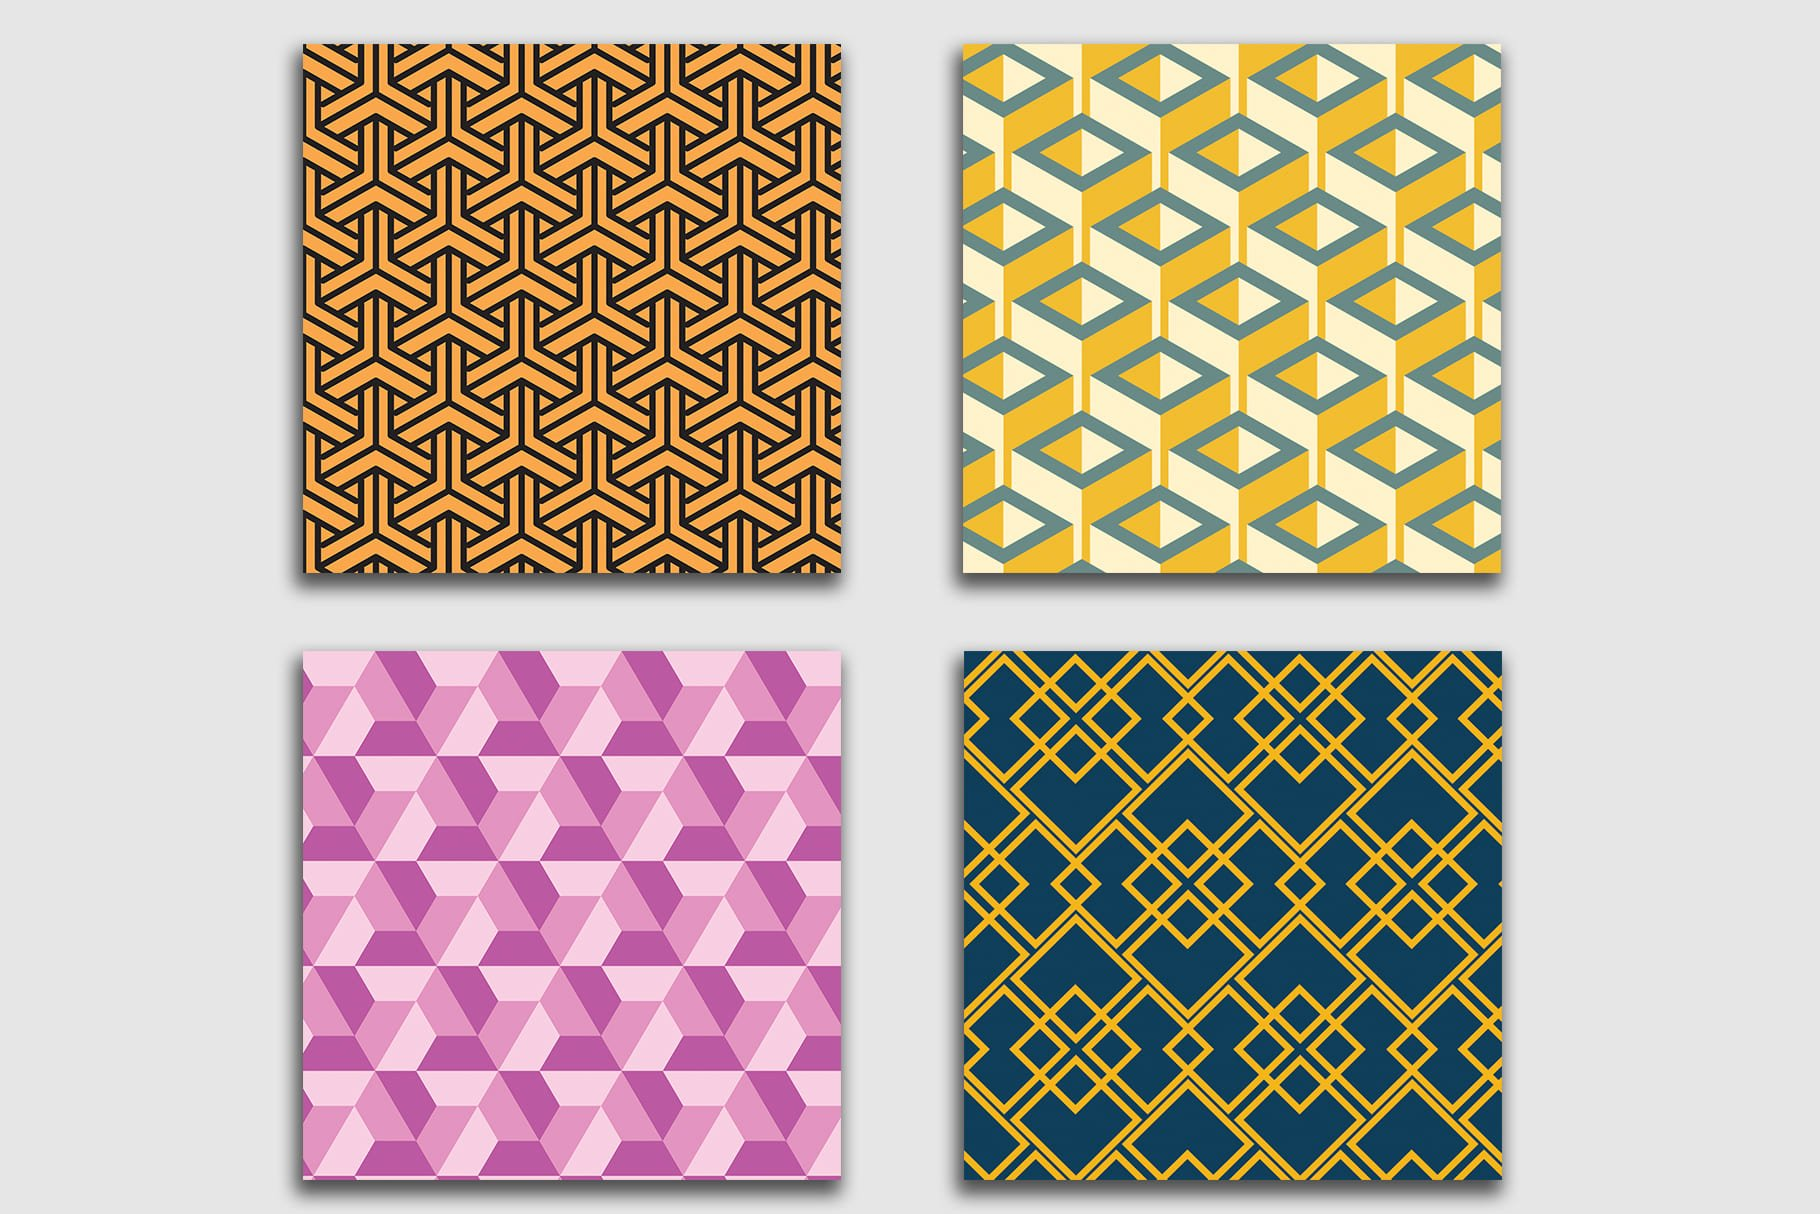 Beautiful tiles in the style of geometric cubism.